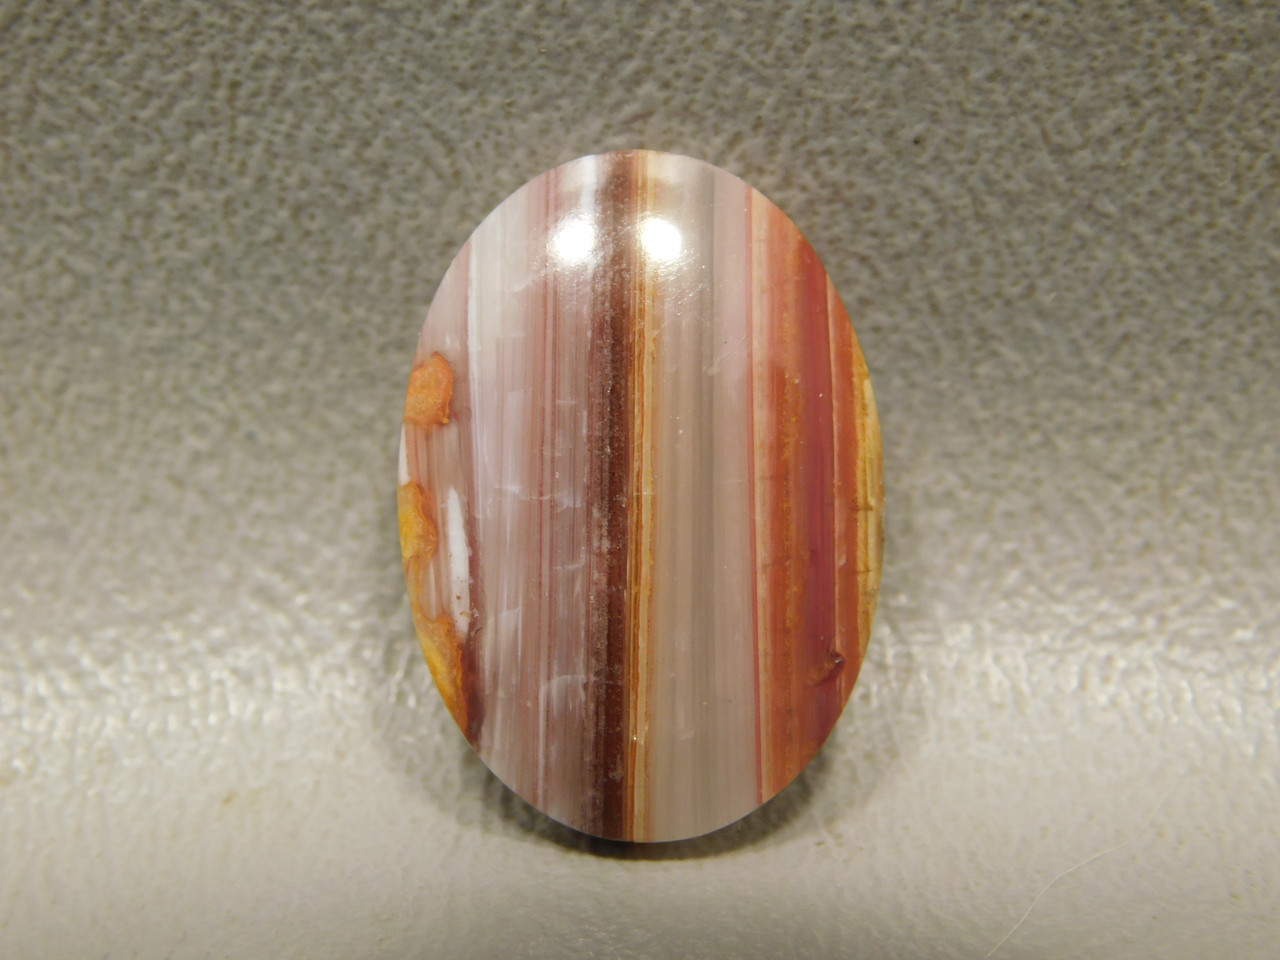 Candy Opal or Bacon Opal Cabochon Stone #4